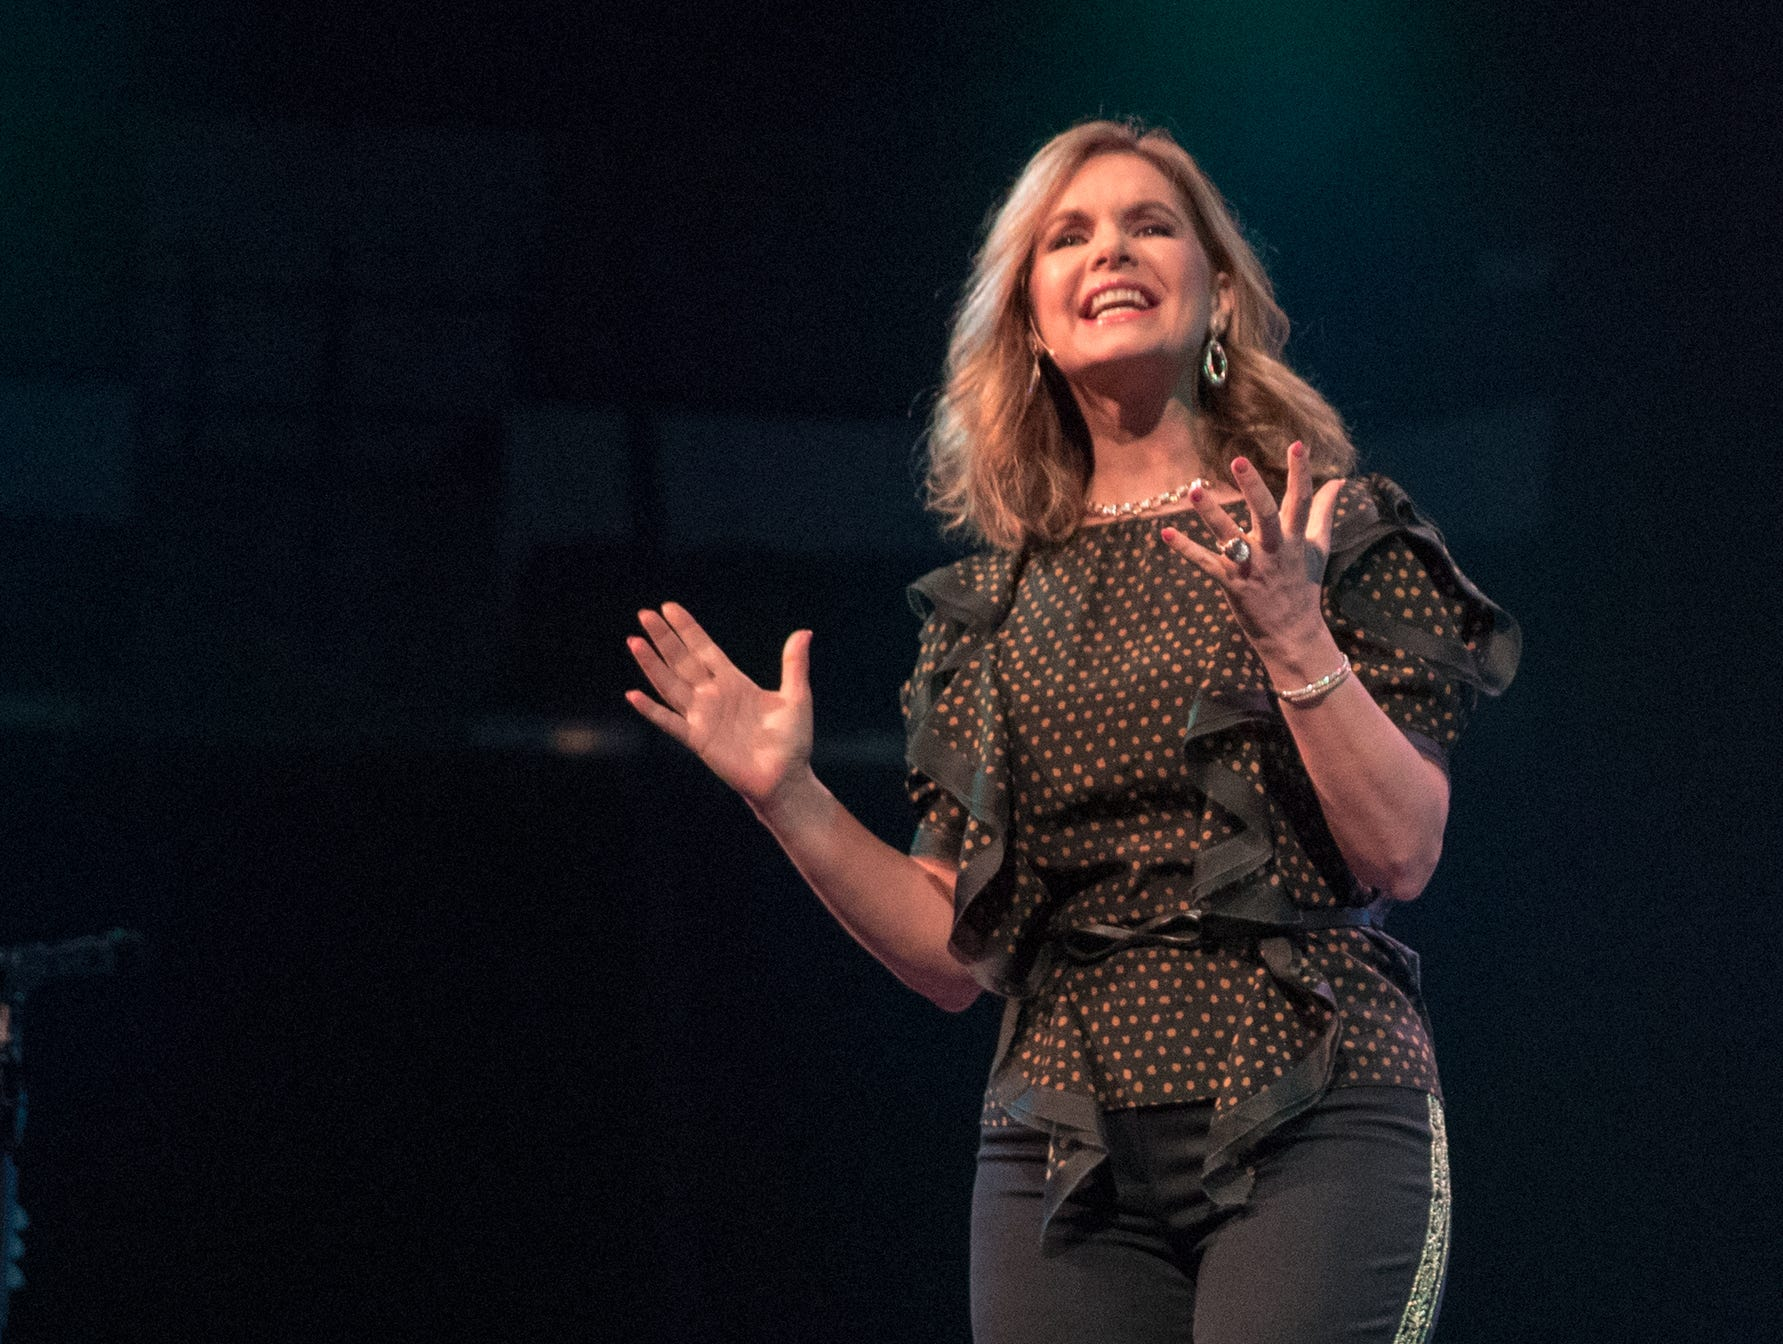 Victoria Osteen speaks at Bankers Life Fieldhouse, Indianapolis, Friday, Aug. 10, 2018. The event, dubbed Night of Hope with Joel and Victoria, drew about 8,000 people to the arena for the event with the Houston-based televangelist.